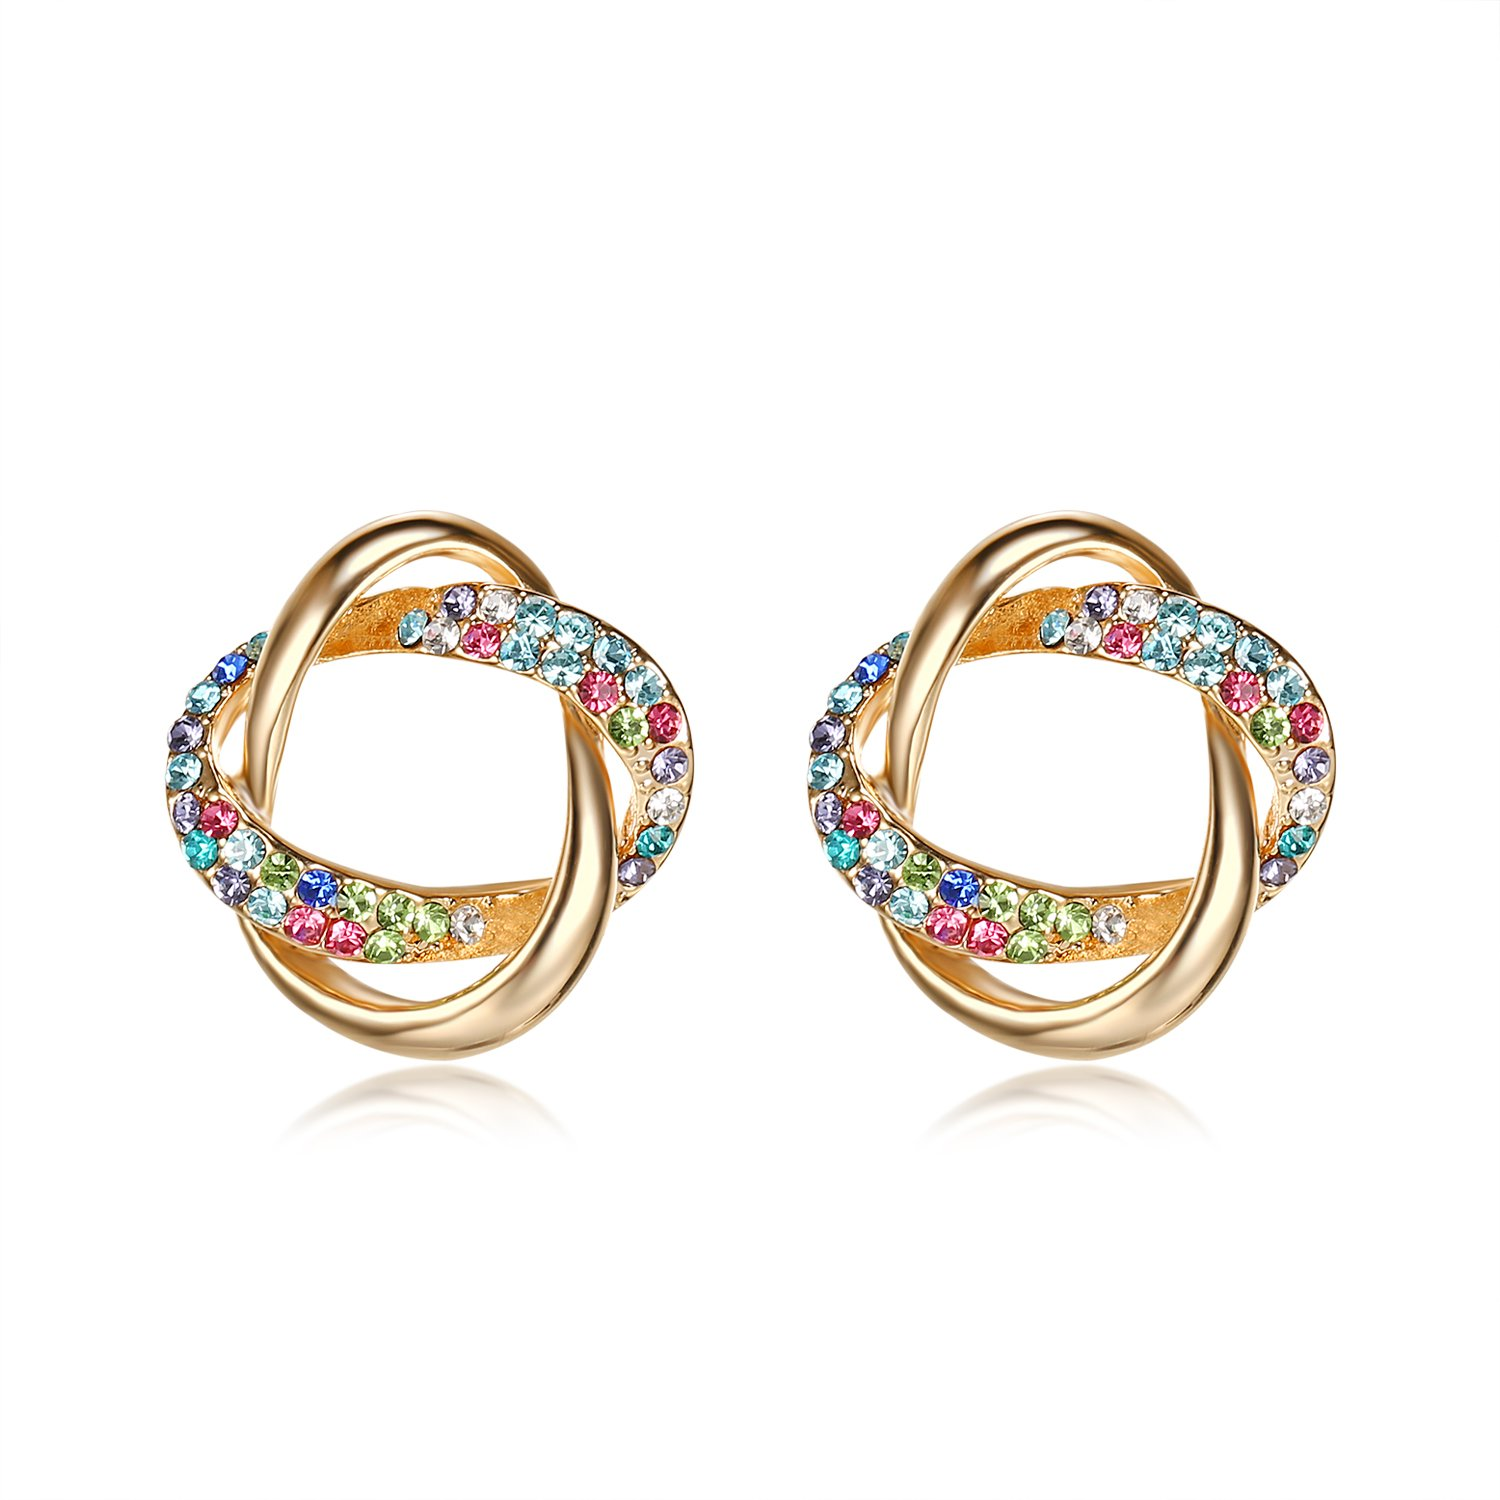 Lee Island Fashion Jewelry 18K Gold Plated Multicolor Austrian Crystal Love Knot Stud Earrings For Woman Girl-Halloween Costumes Princess Earrings B07C3QLSLK_US